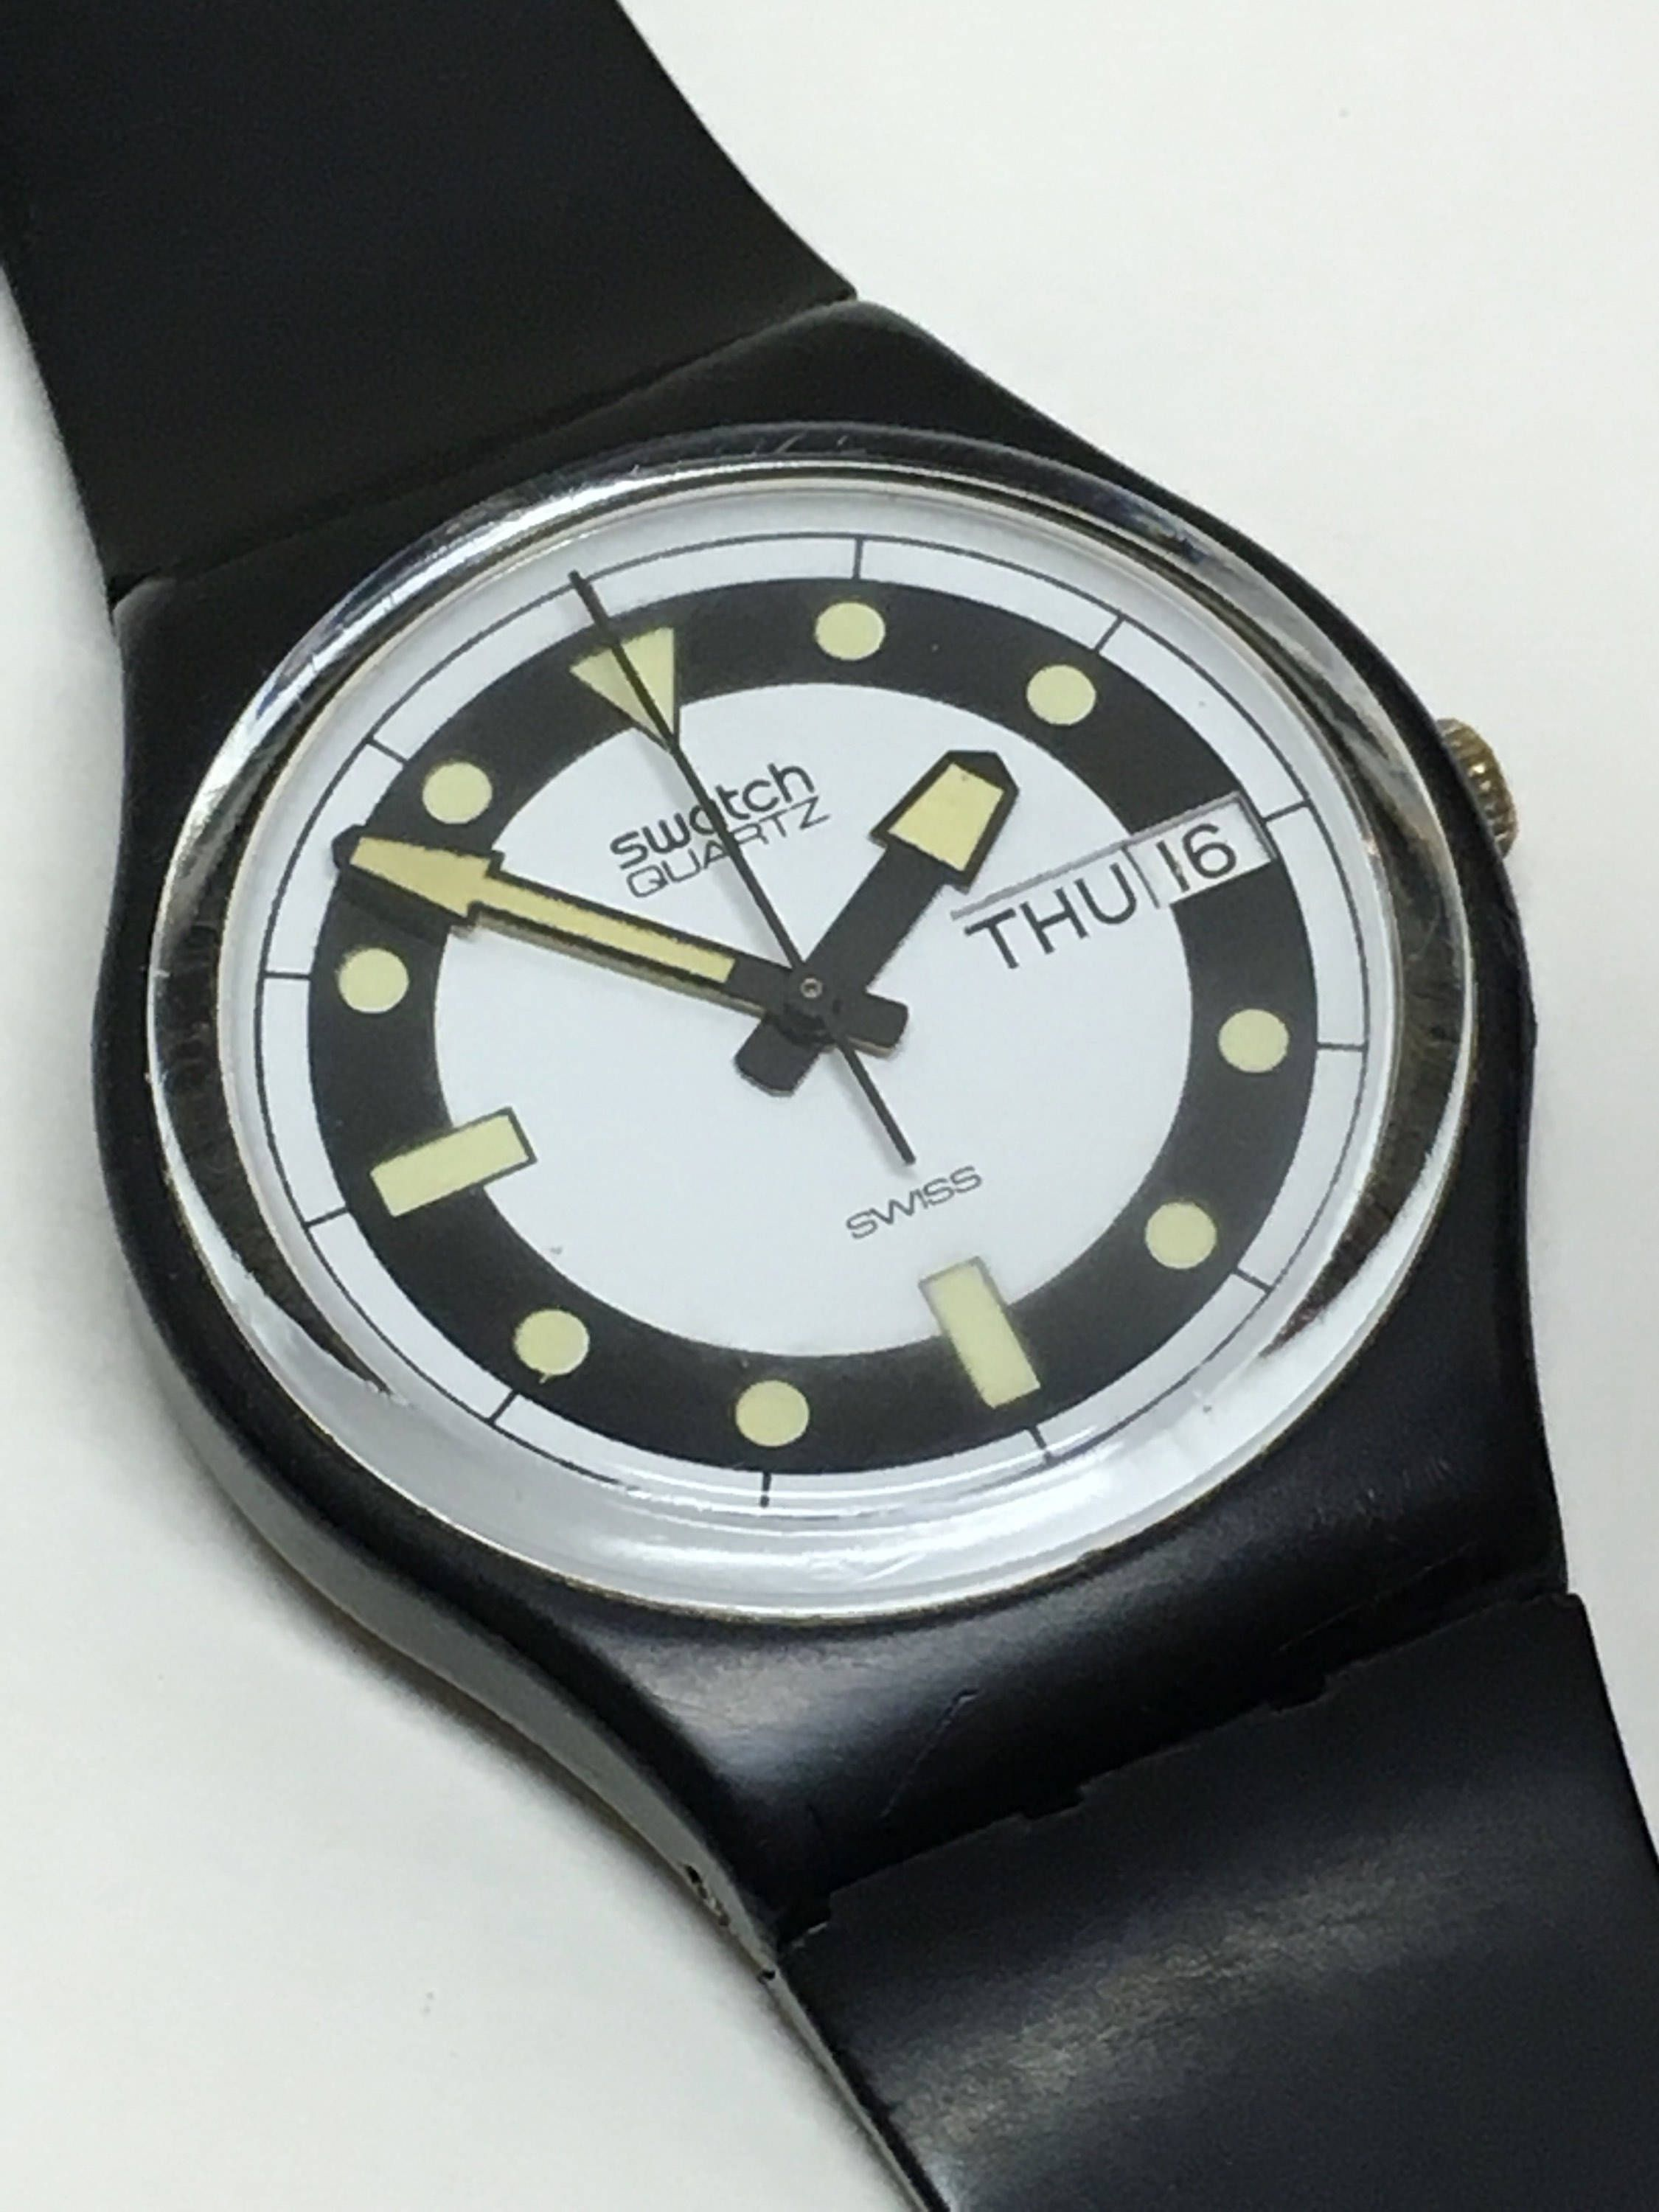 7d199314dad7 Swatch Watch Vintage Black Divers GB704 1984 Day Date Glow In The Dark  Hands Markers Retro Swatch Watch Christmas Gift by ThatIsSoFunny on Etsy